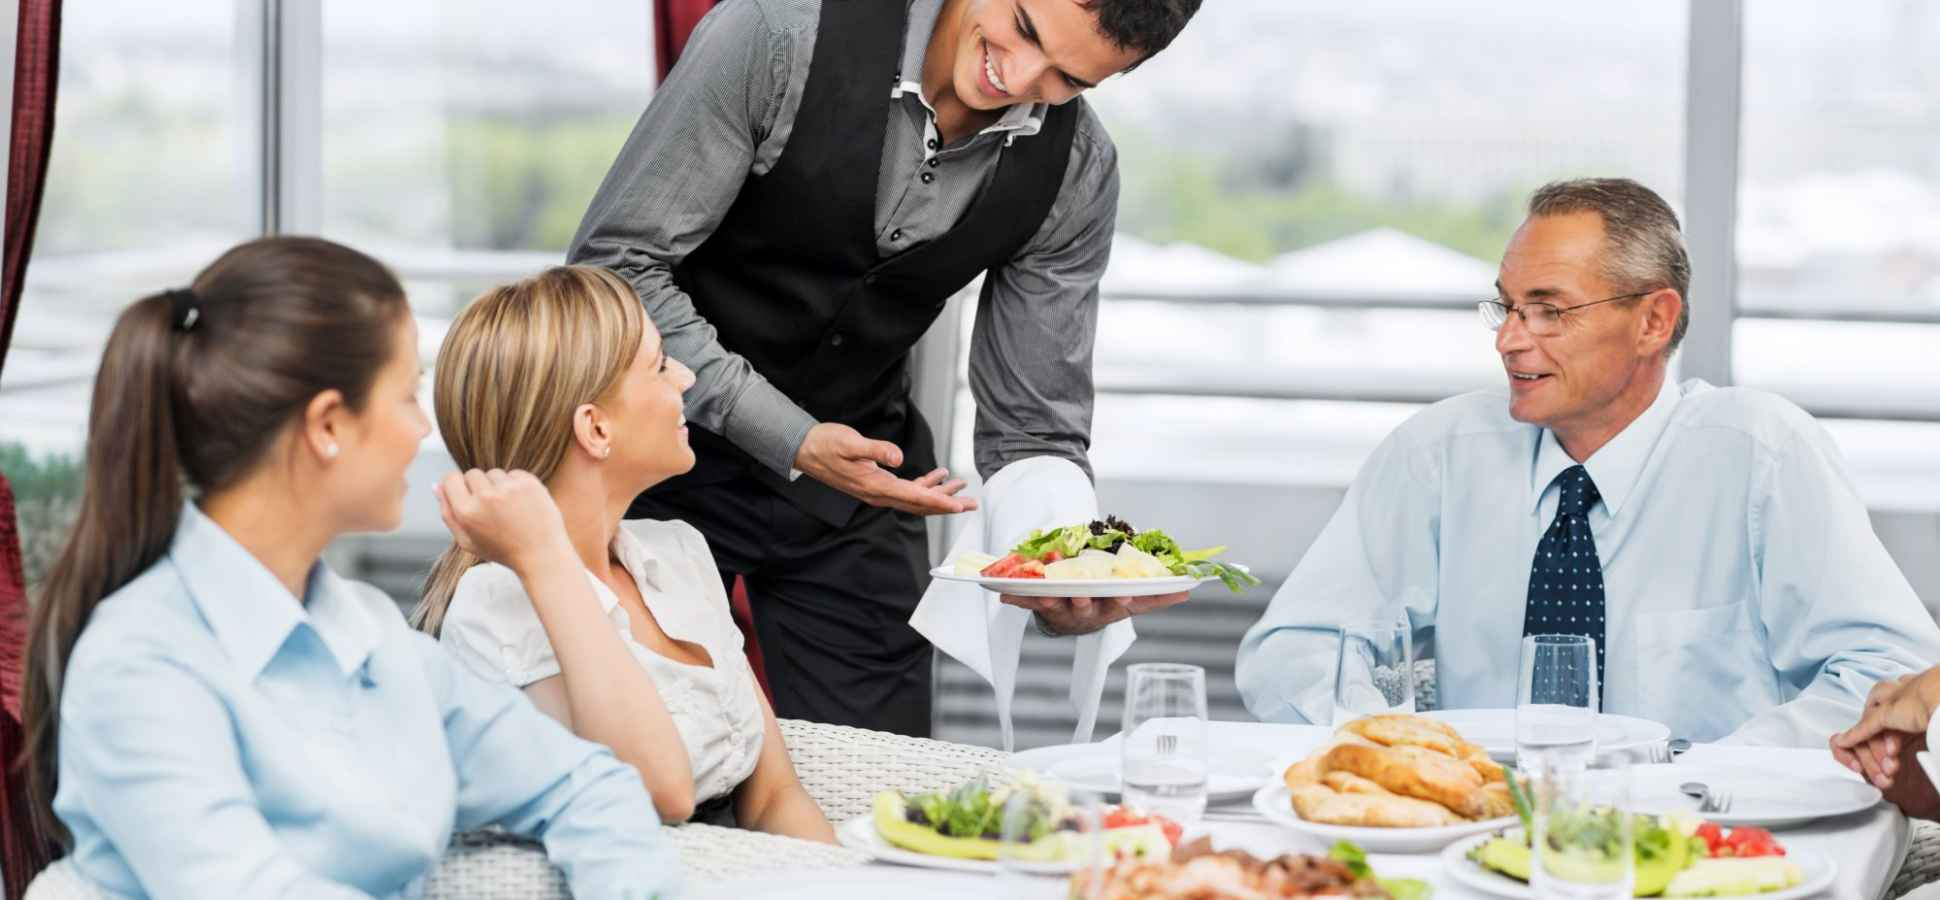 Eating Out for a Work Meeting? Science Says Order These 7 Foods for an Afternoon Brain Boost